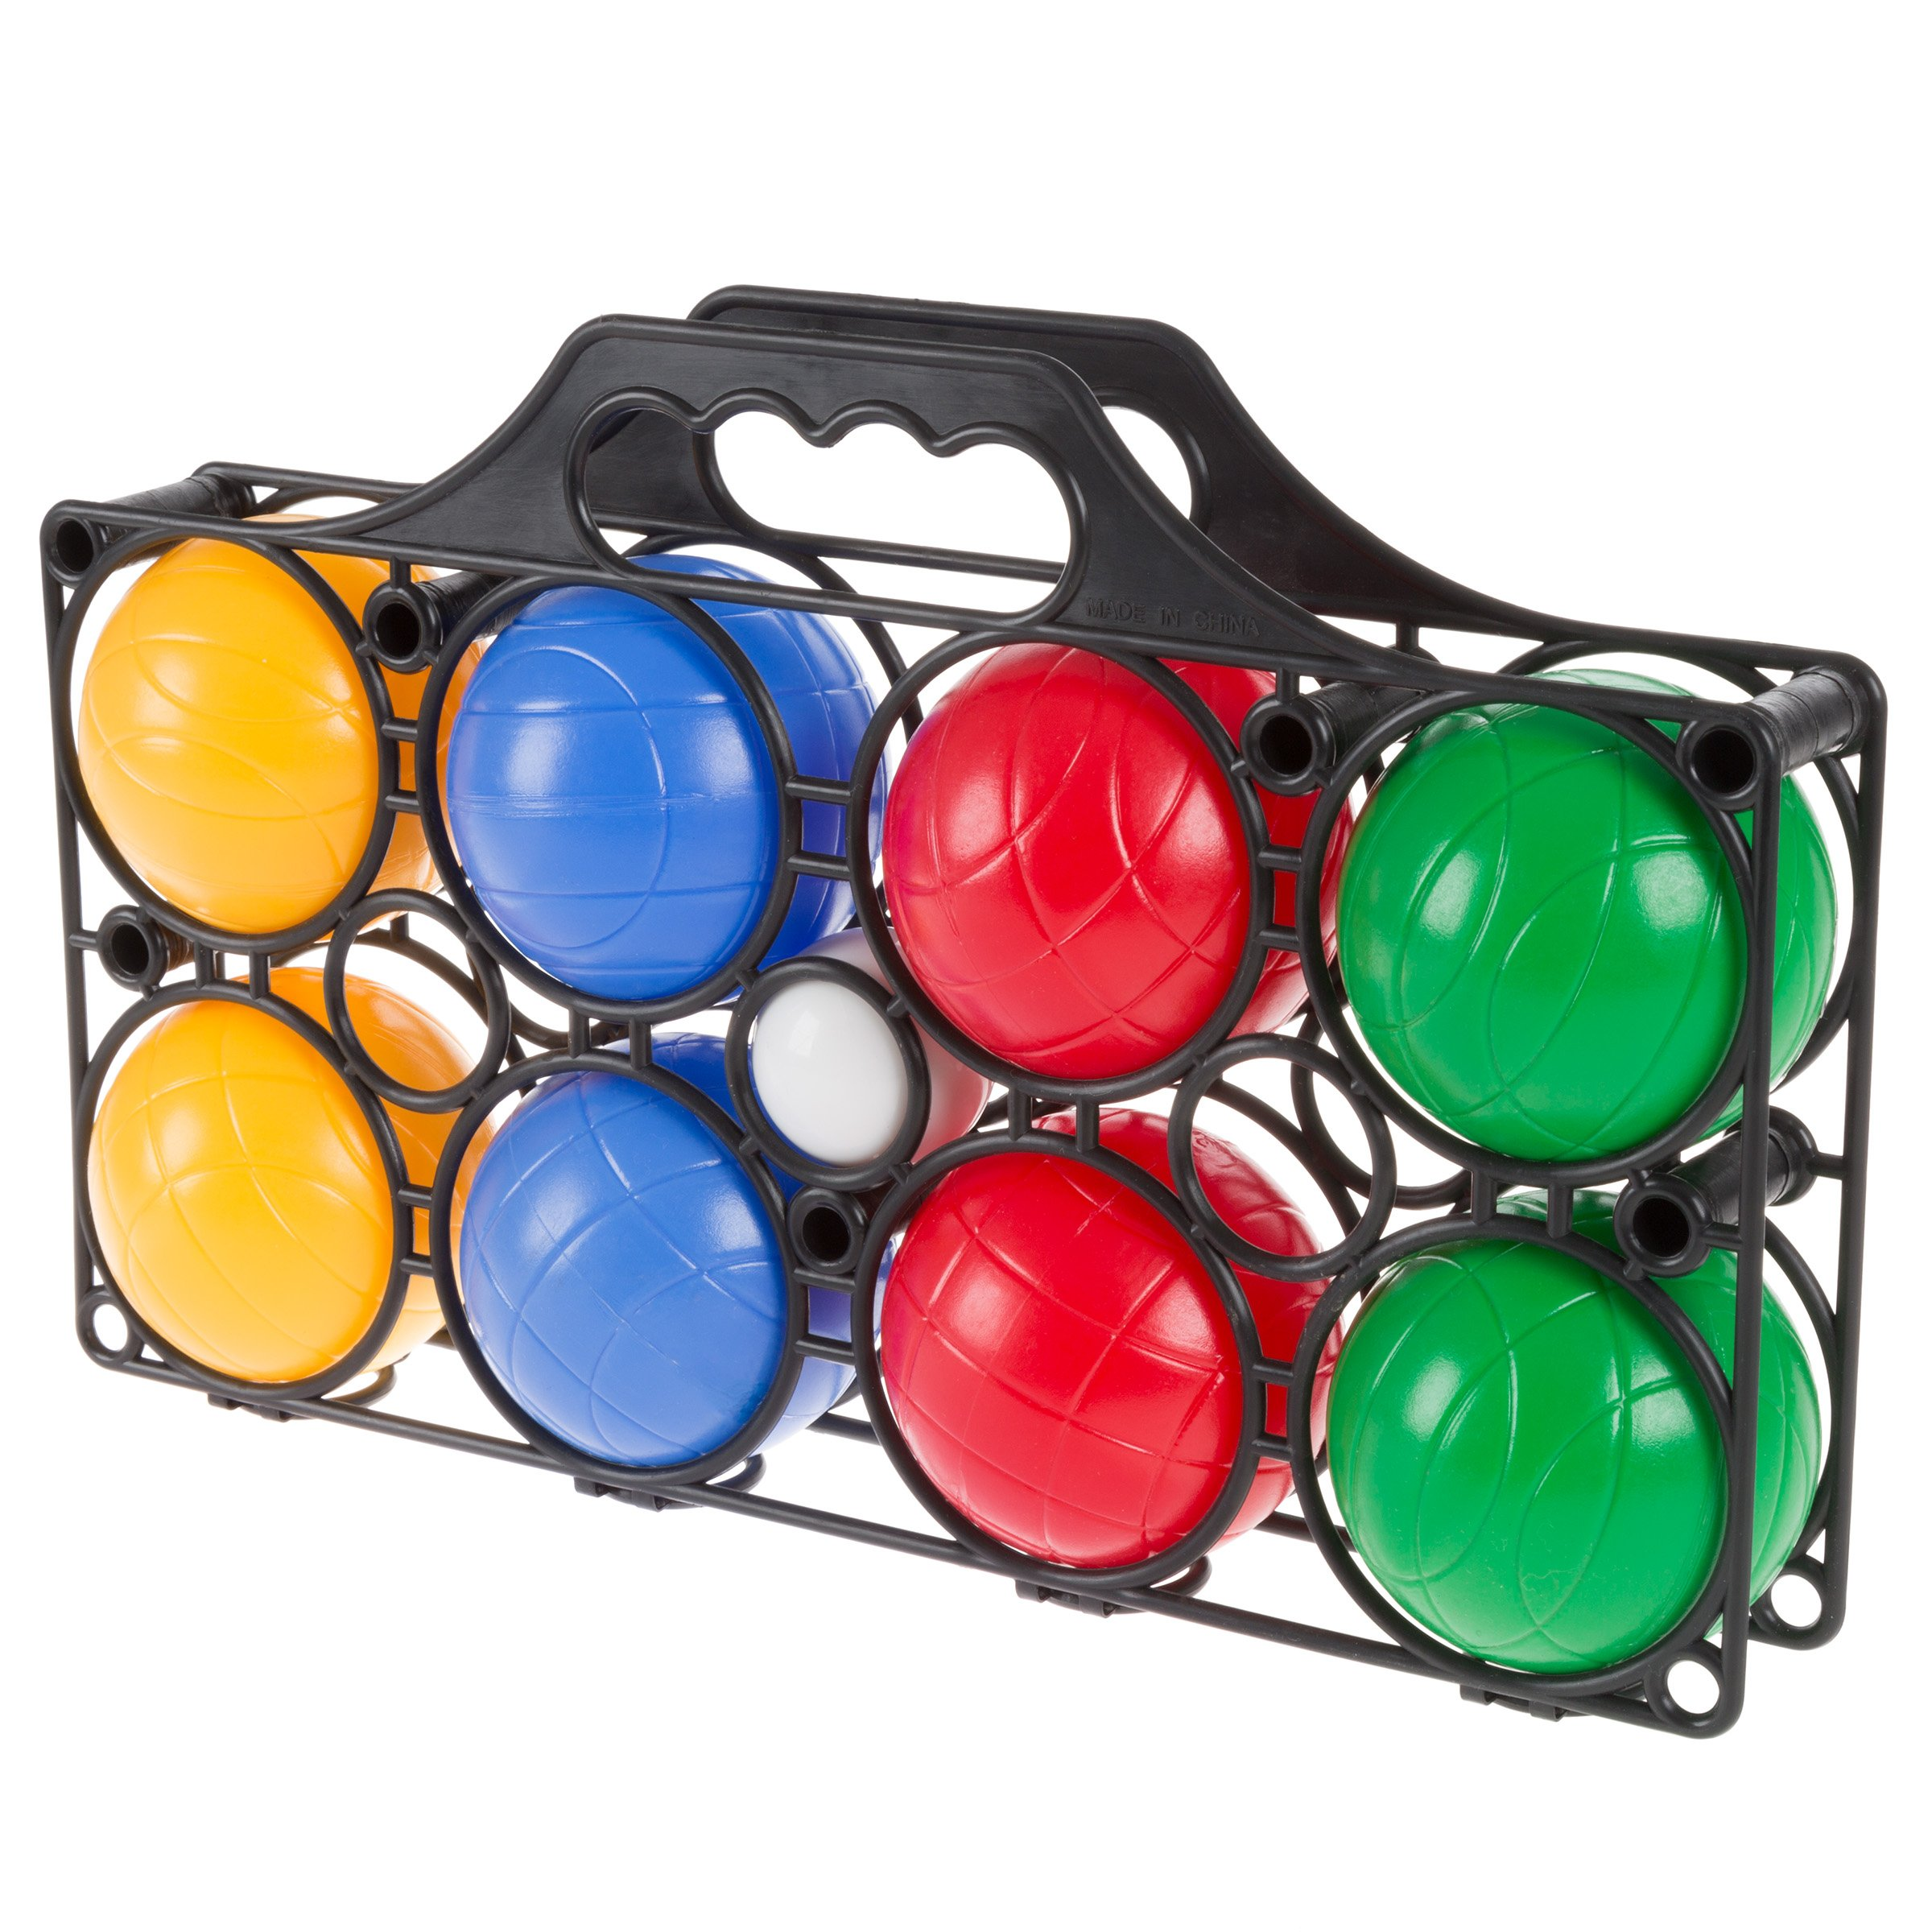 Hey!Play!! Beginner Bocce Ball Set with 8 Colorful Bocce Balls, Pallino and Carrying Case- Classic Outdoor Game for Kids, Adults and Family by Hey!Play!